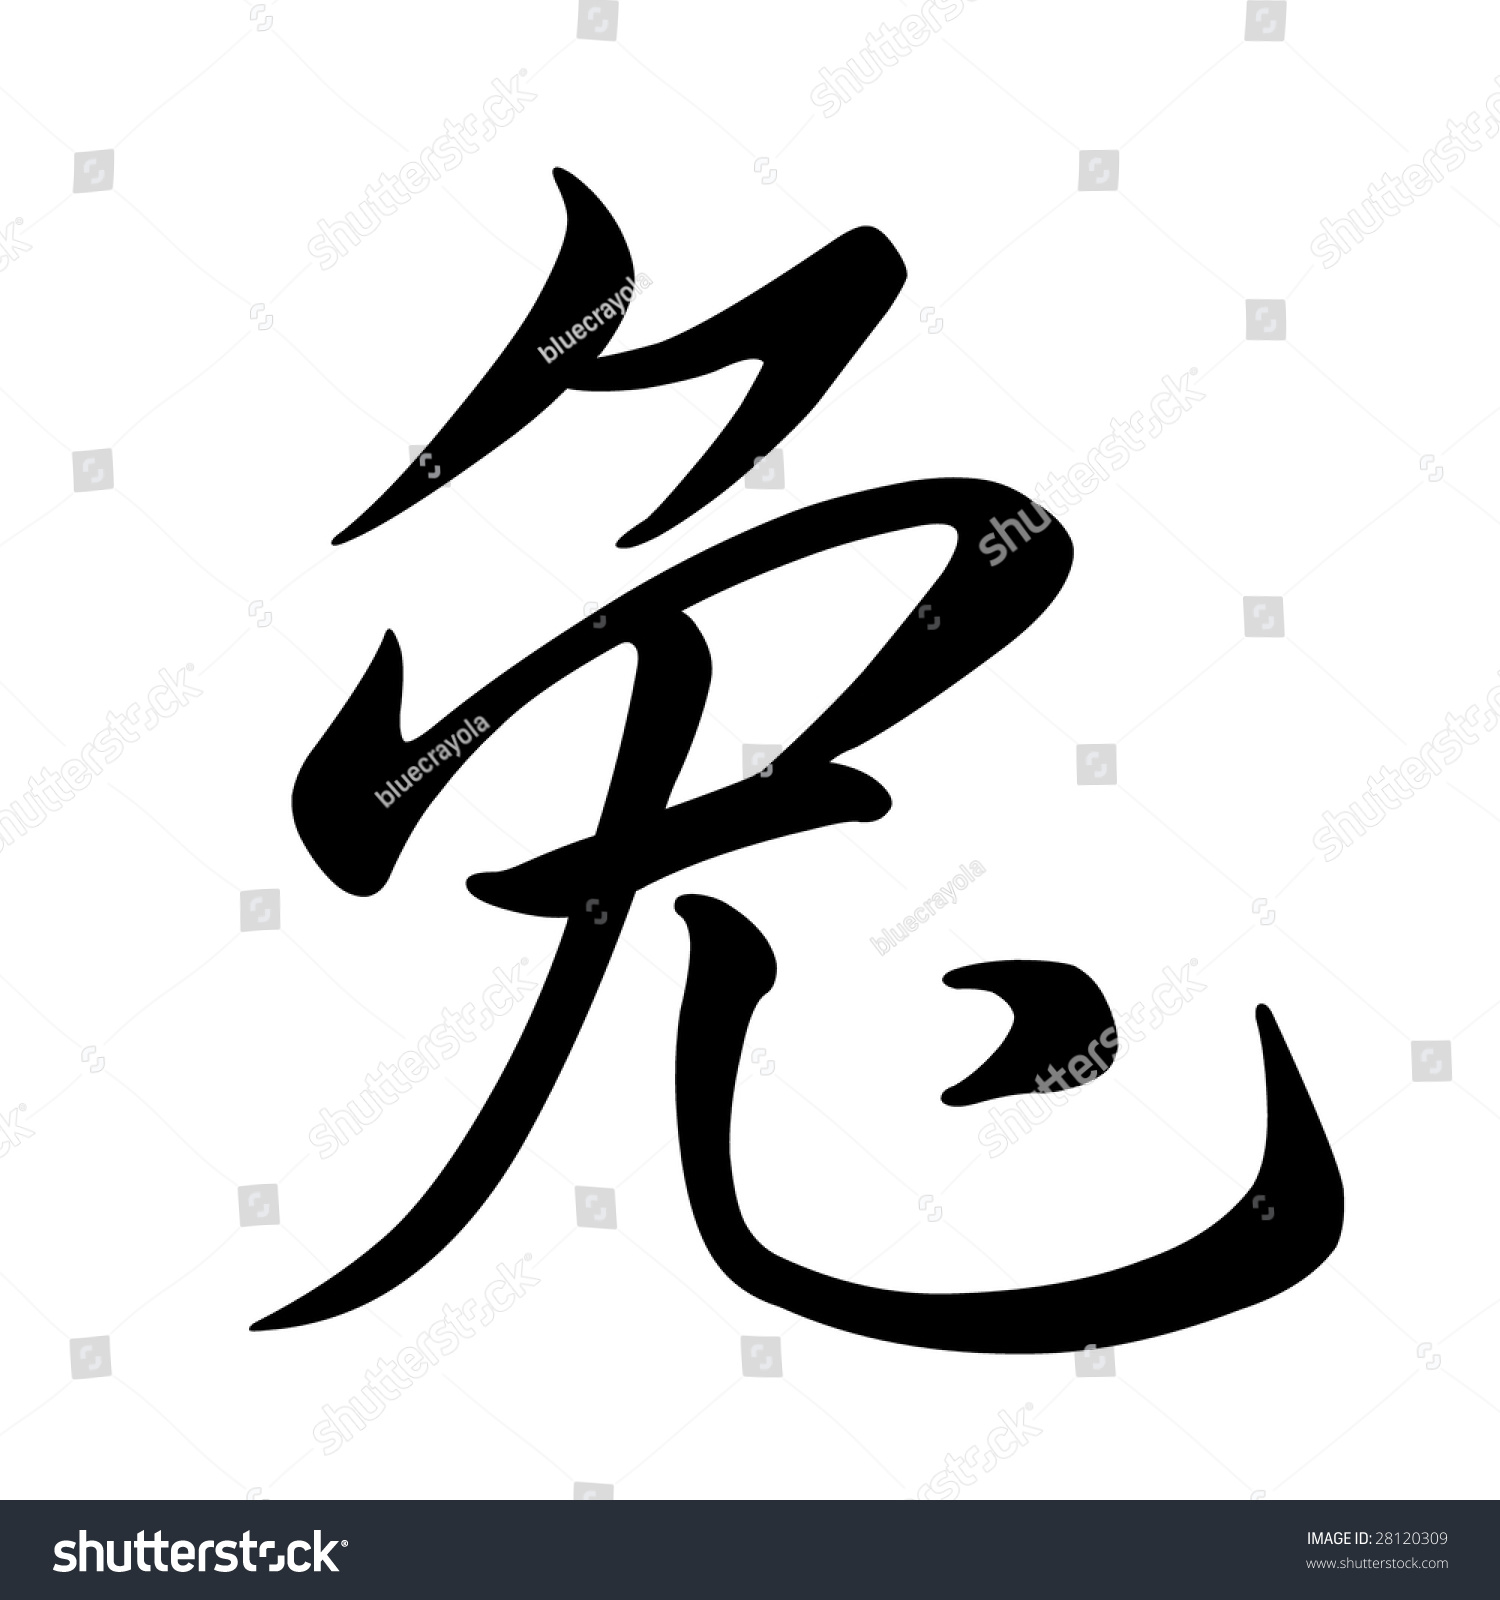 Sign Of The Chinese Zodiac: Rabbit Stock Photo 28120309 ...